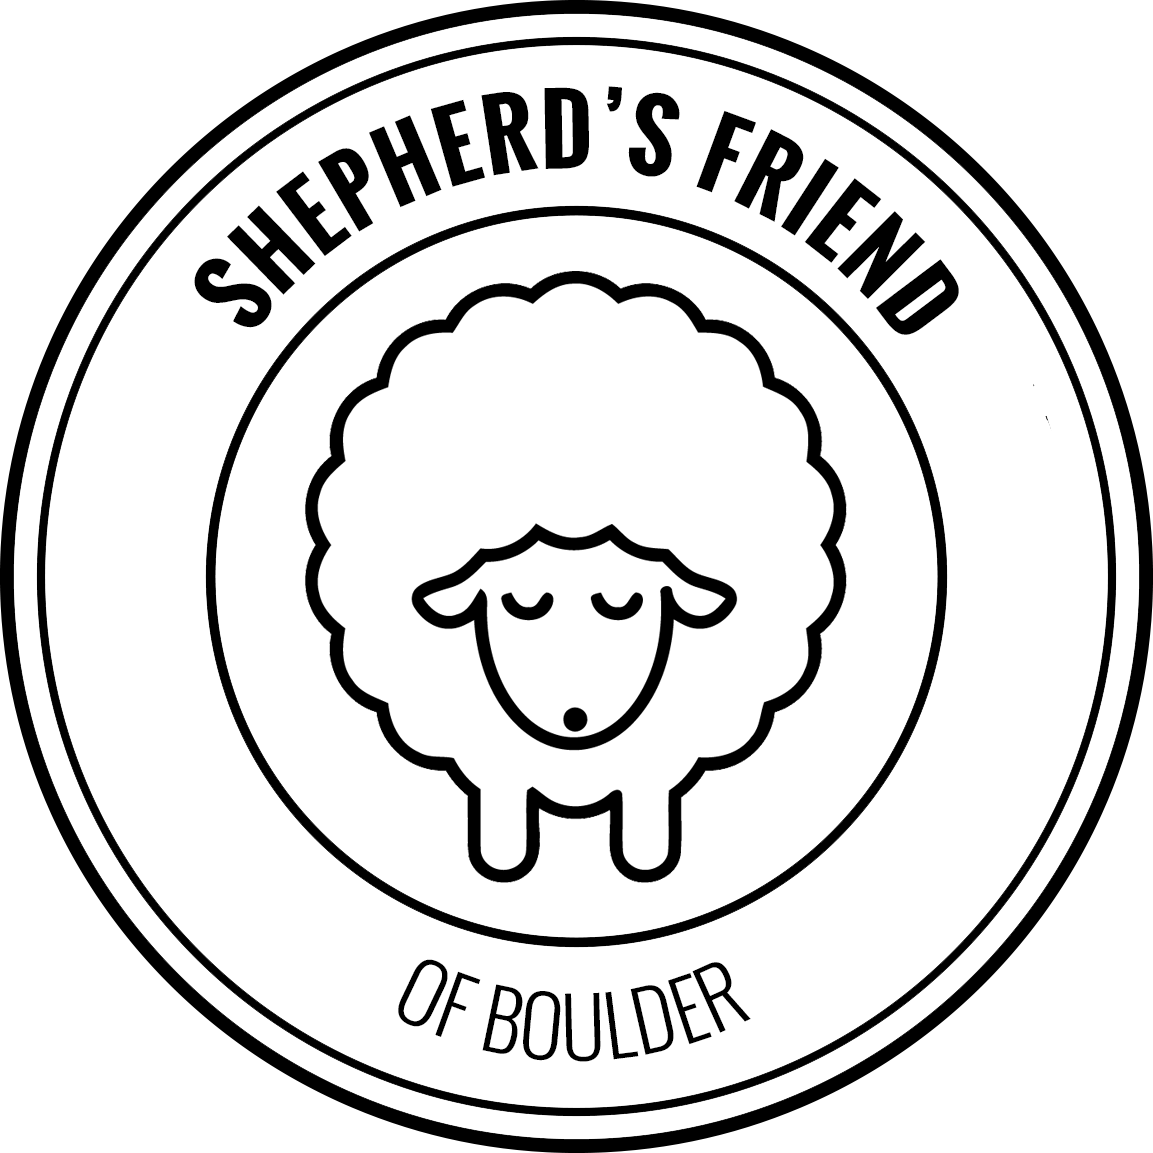 Shepherd's Friend of Boulder